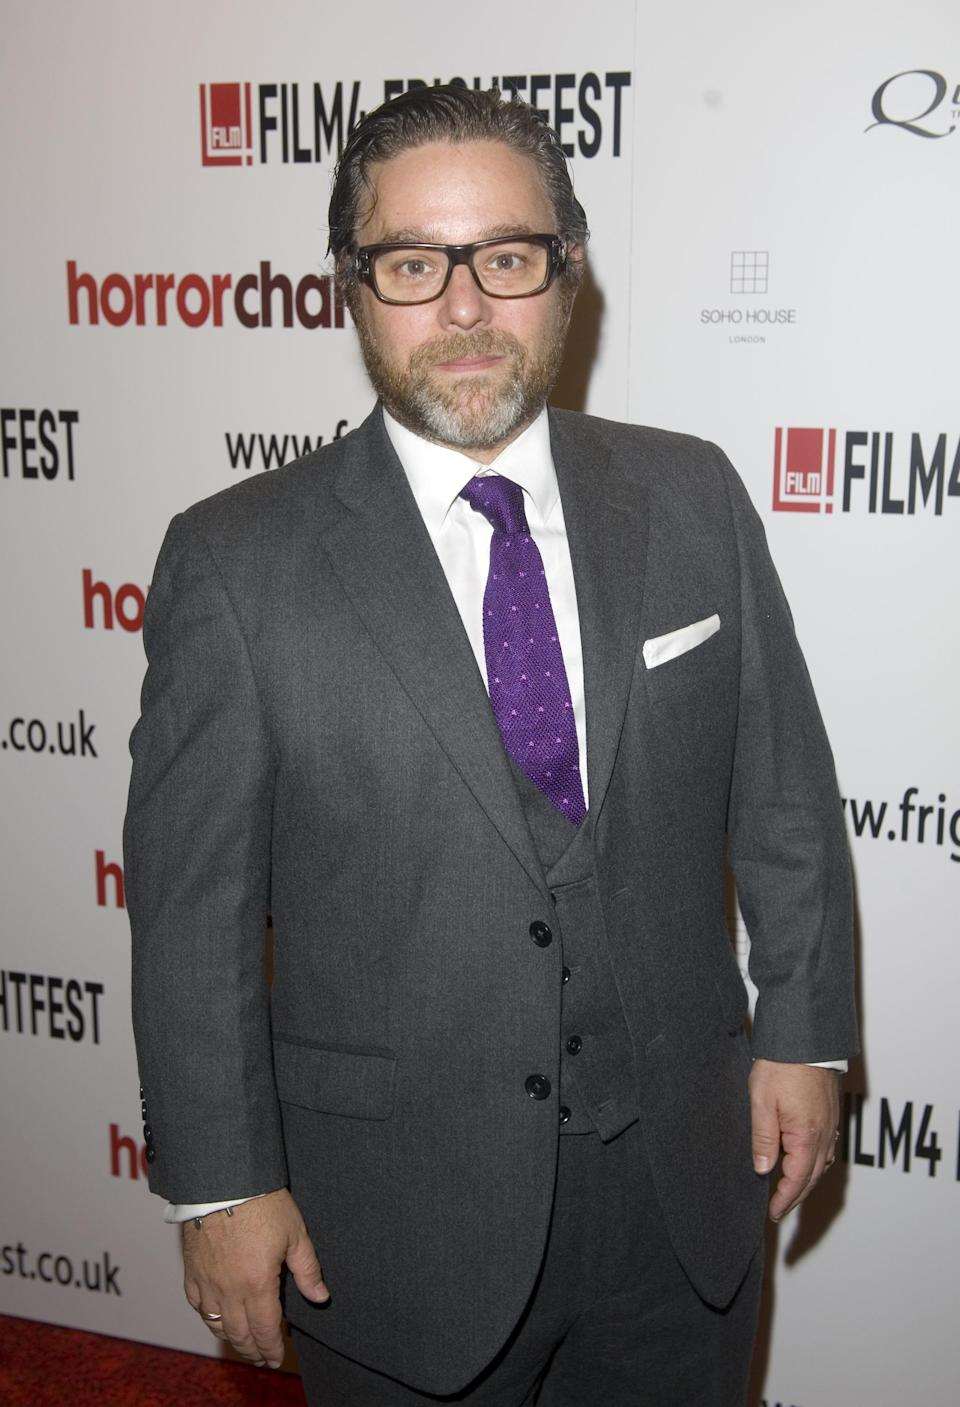 Andy Nyman arriving for the premiere of The Glass Man shown as part of the Film4 FrightFest at the Empire Cinema, Leicester Square, London.   (Photo by Anthony Devlin/PA Images via Getty Images)